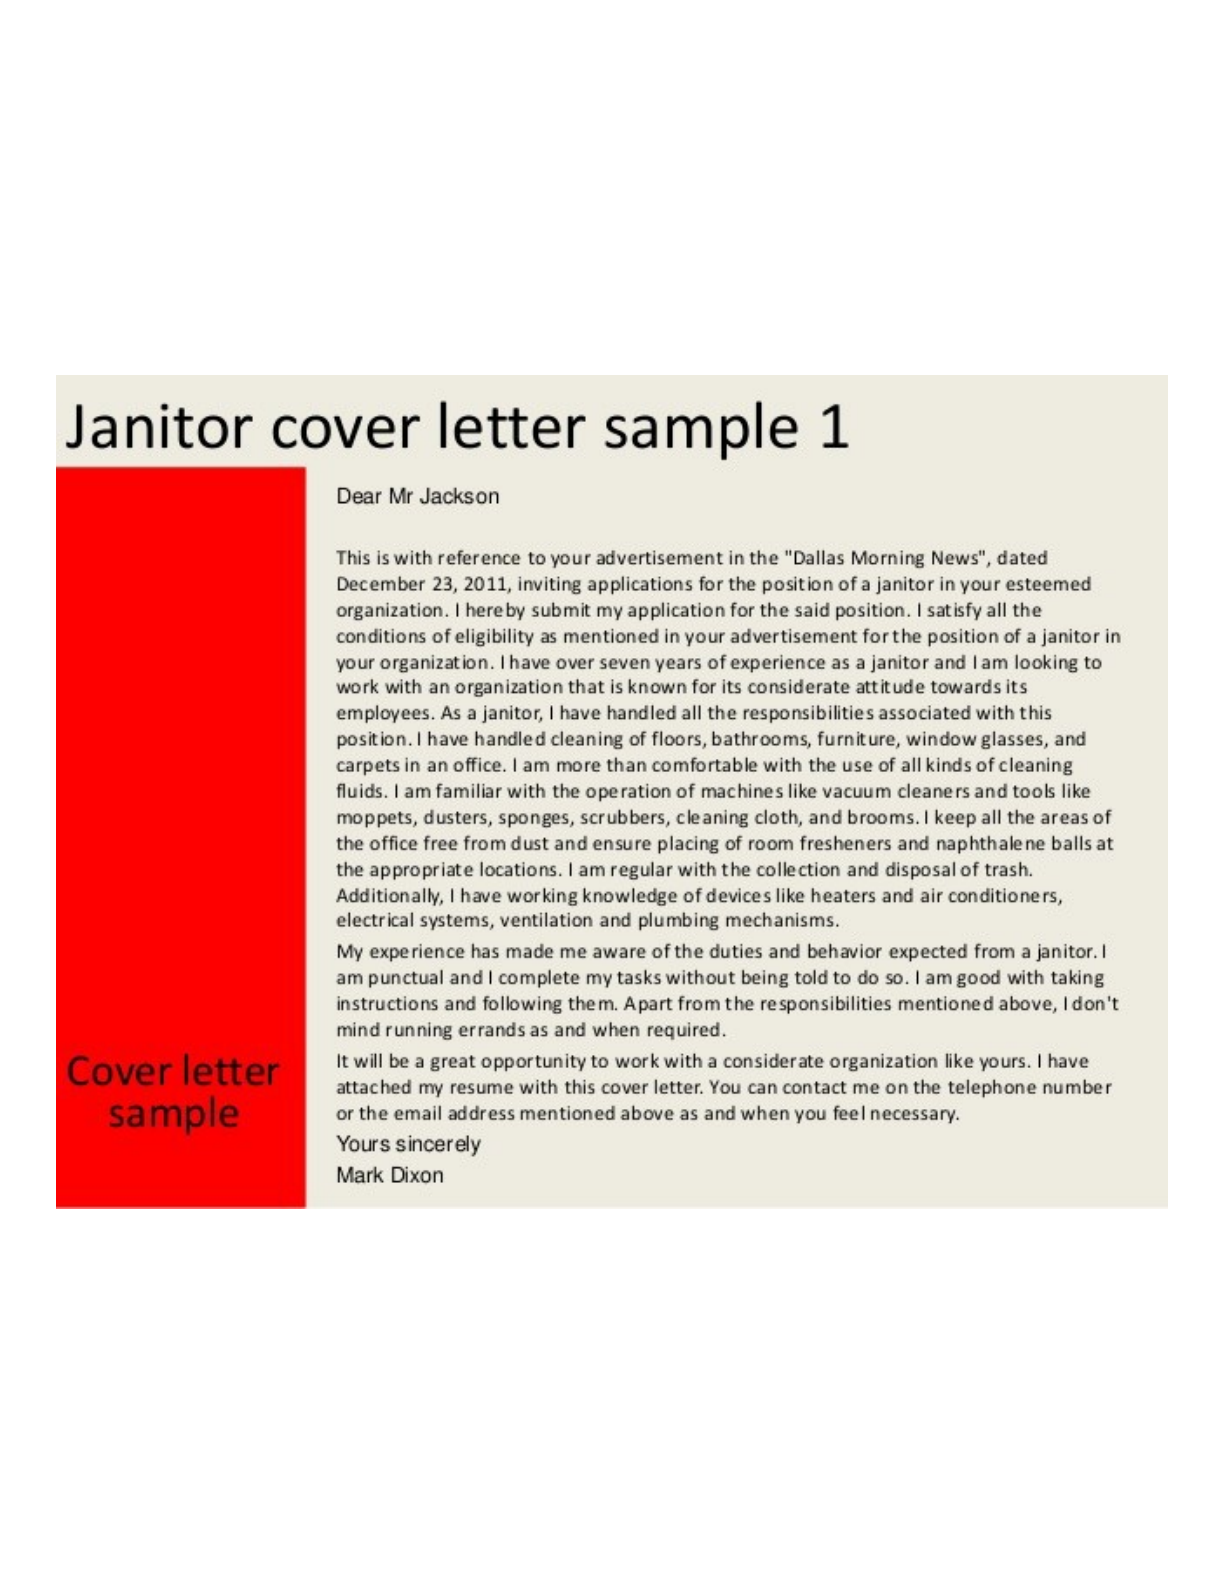 Basic Janitor Cover Letter Samples and Templates